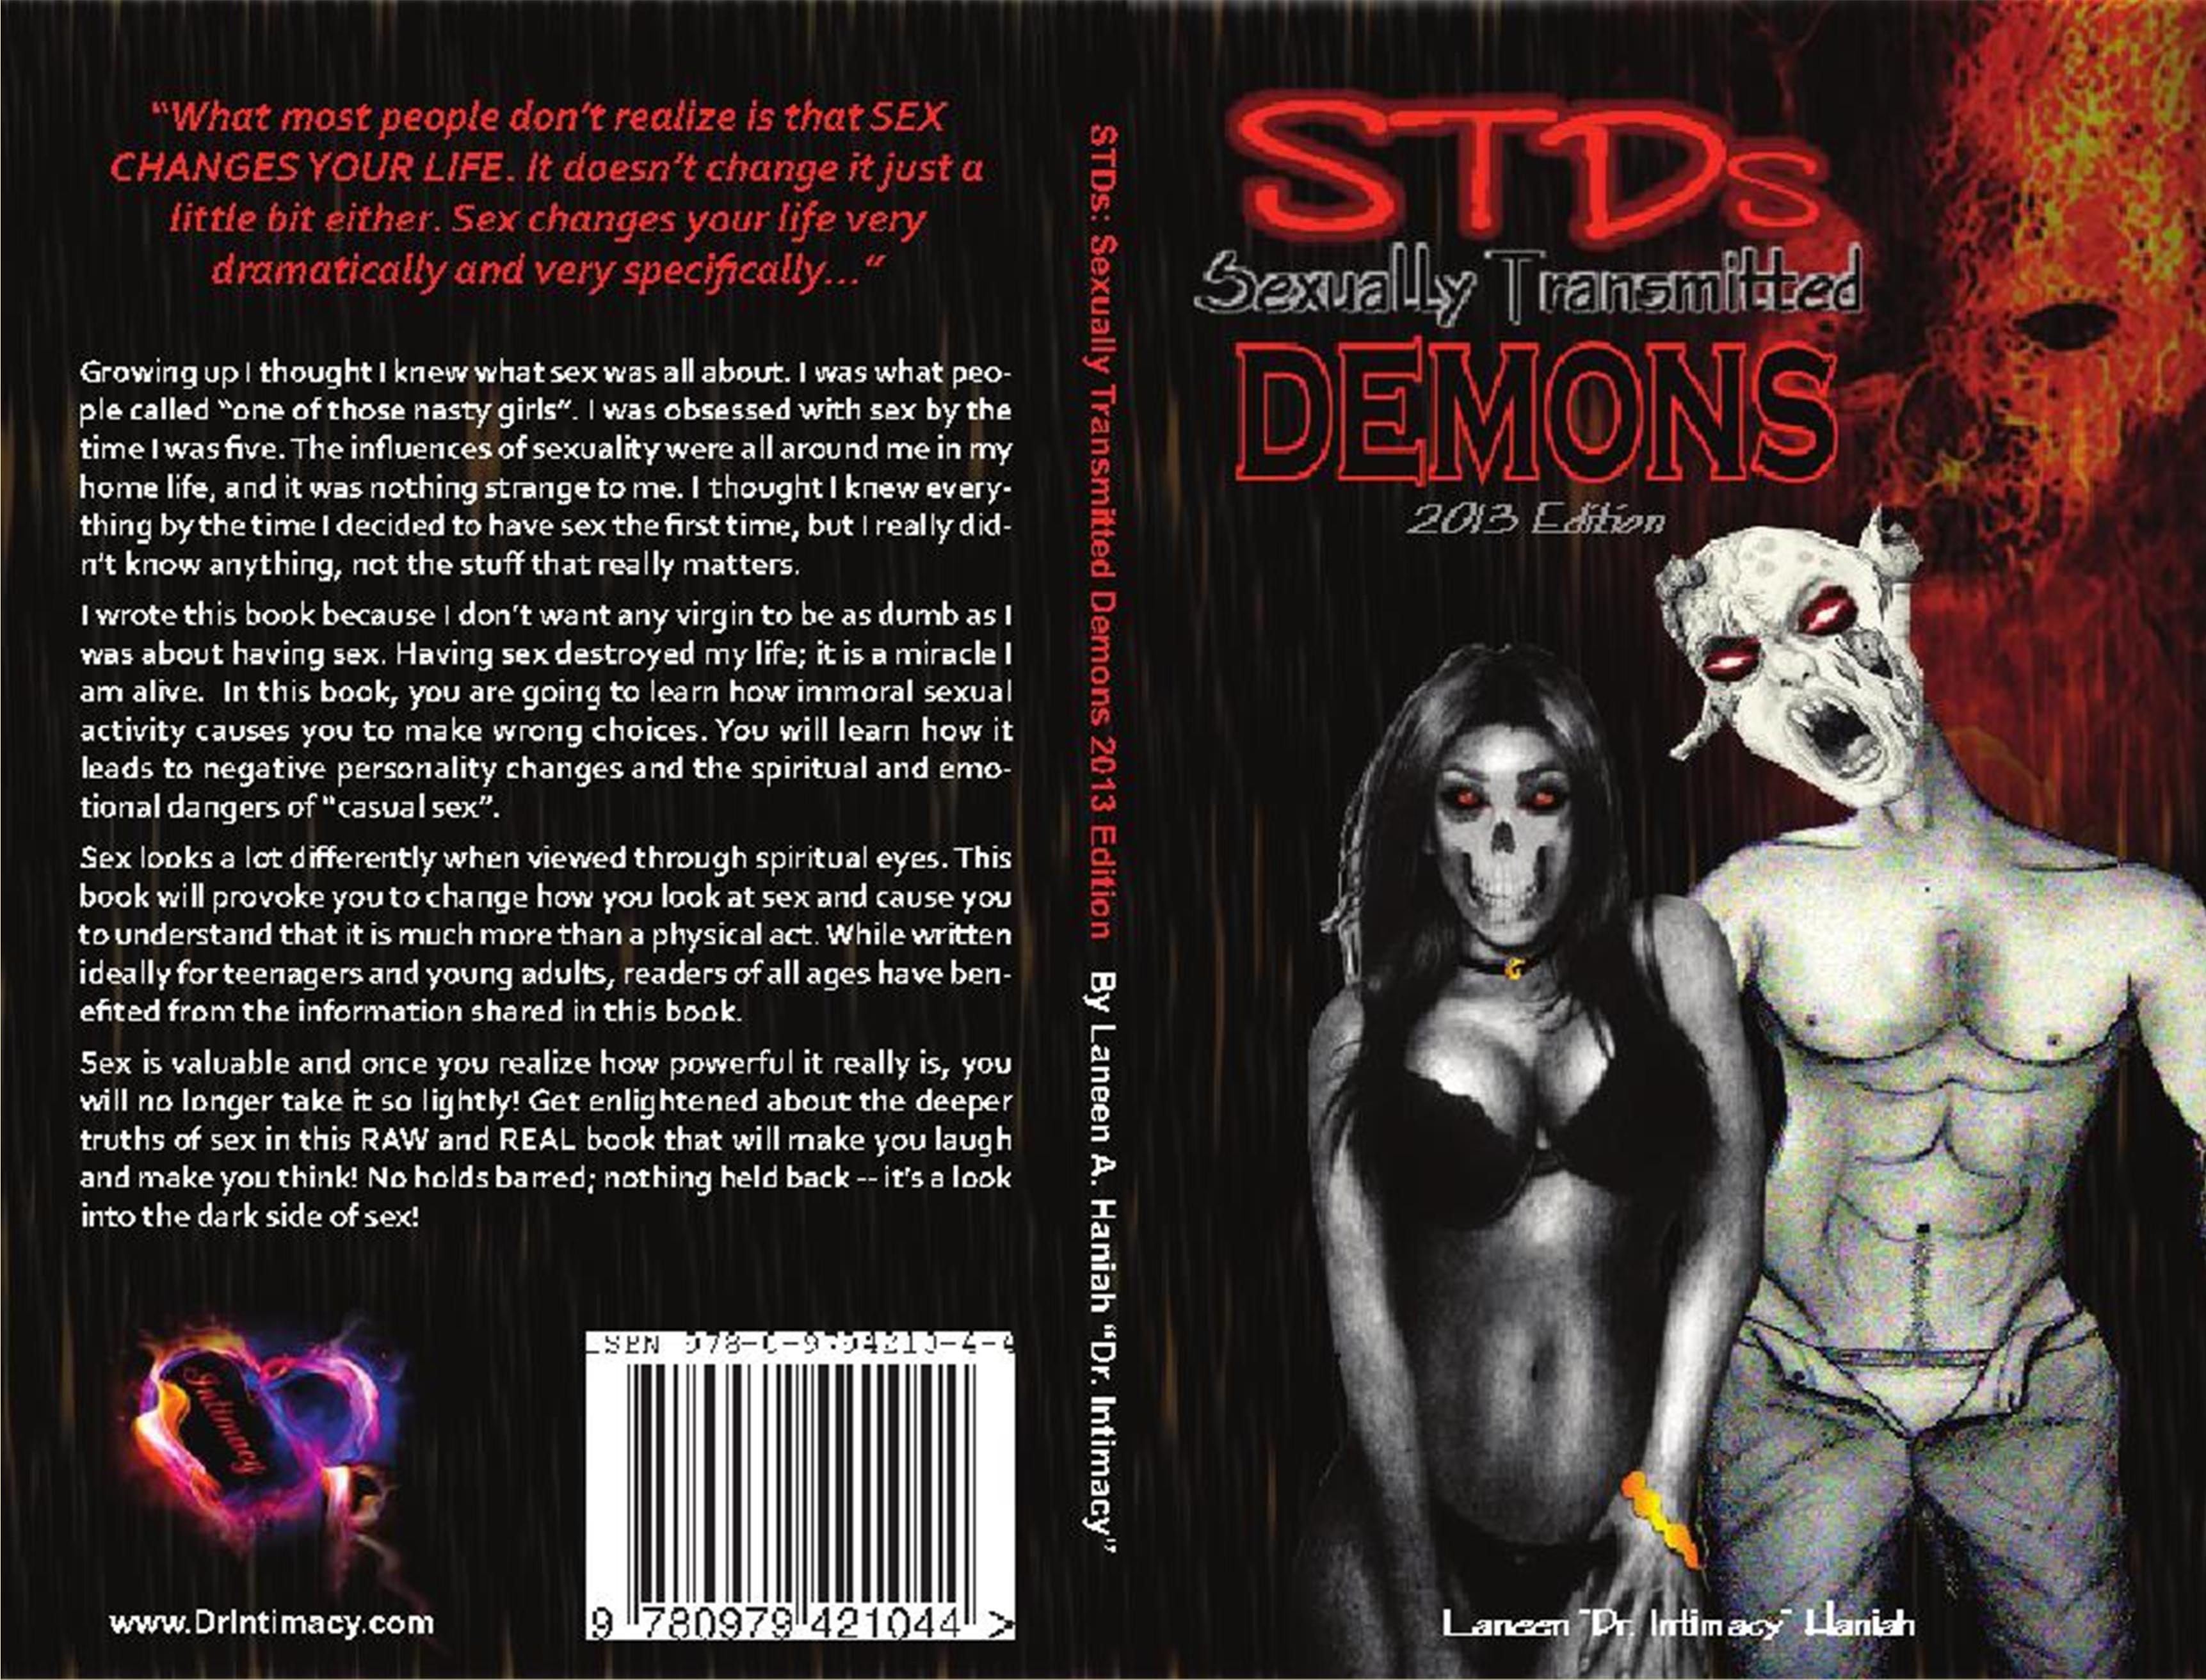 Stds sexually transmitted demons